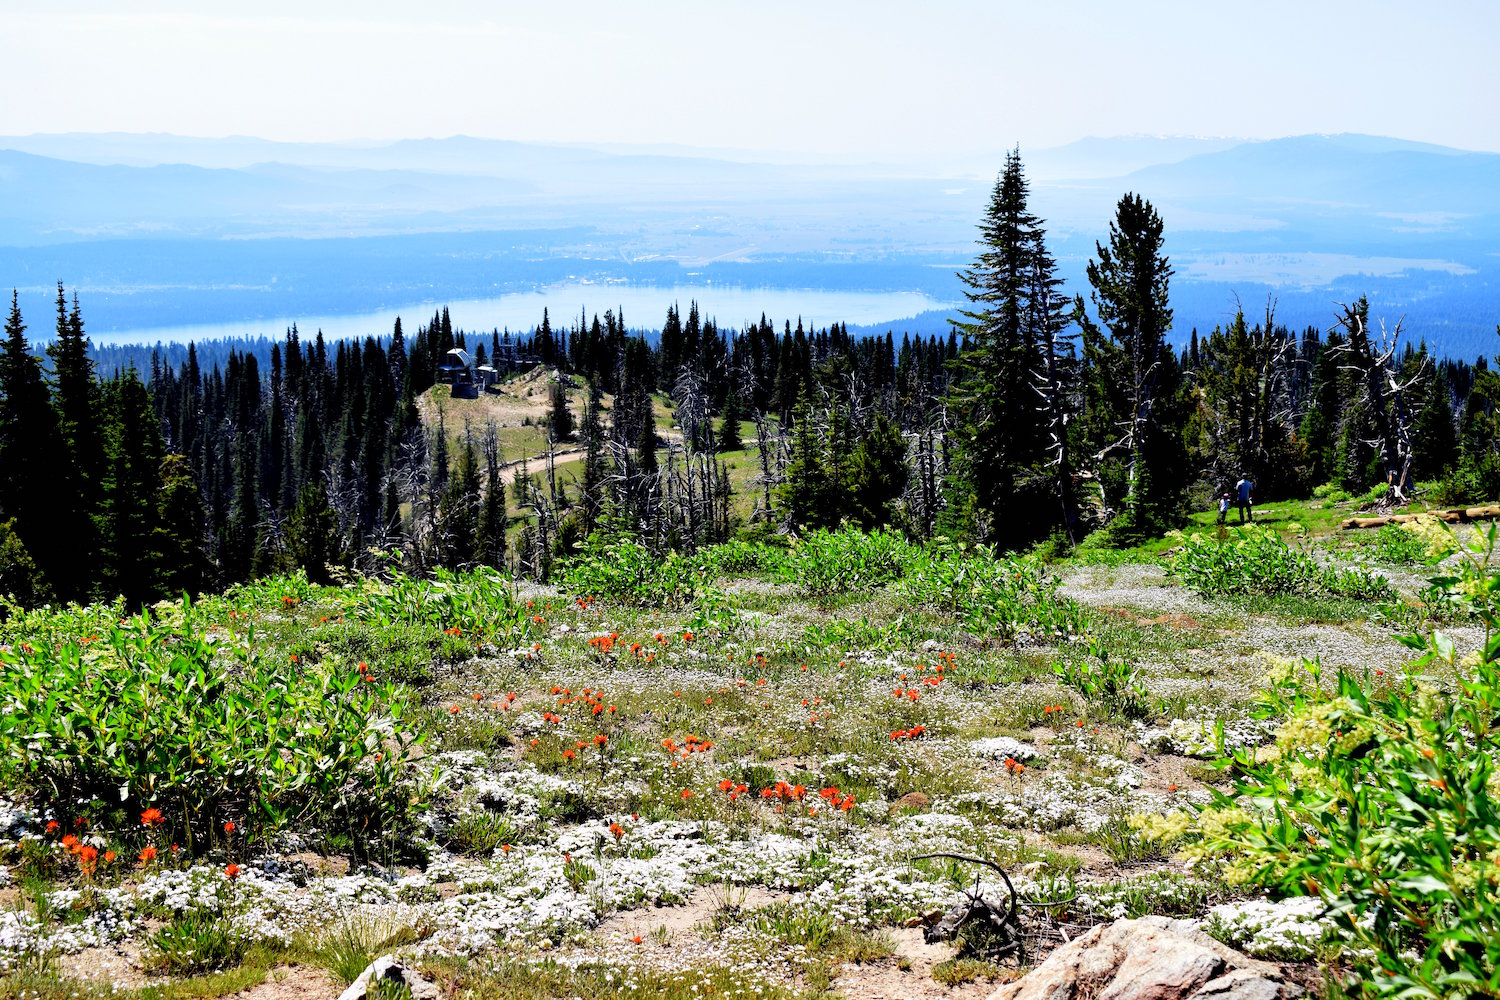 View from the top of Brundage